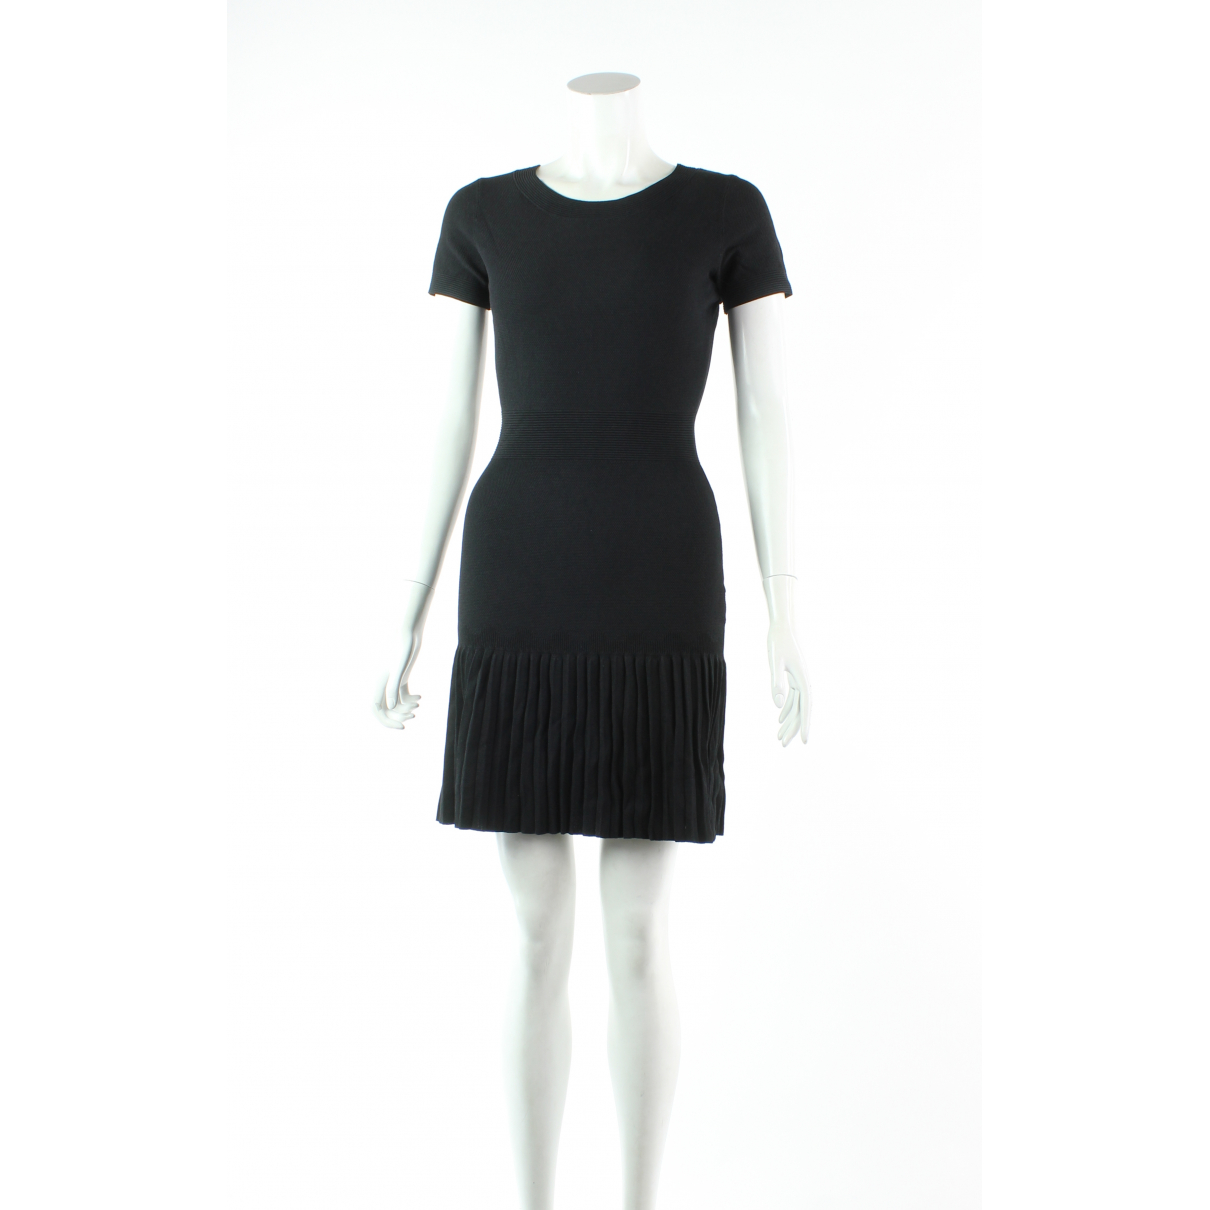 Sandro \N Black dress for Women M International